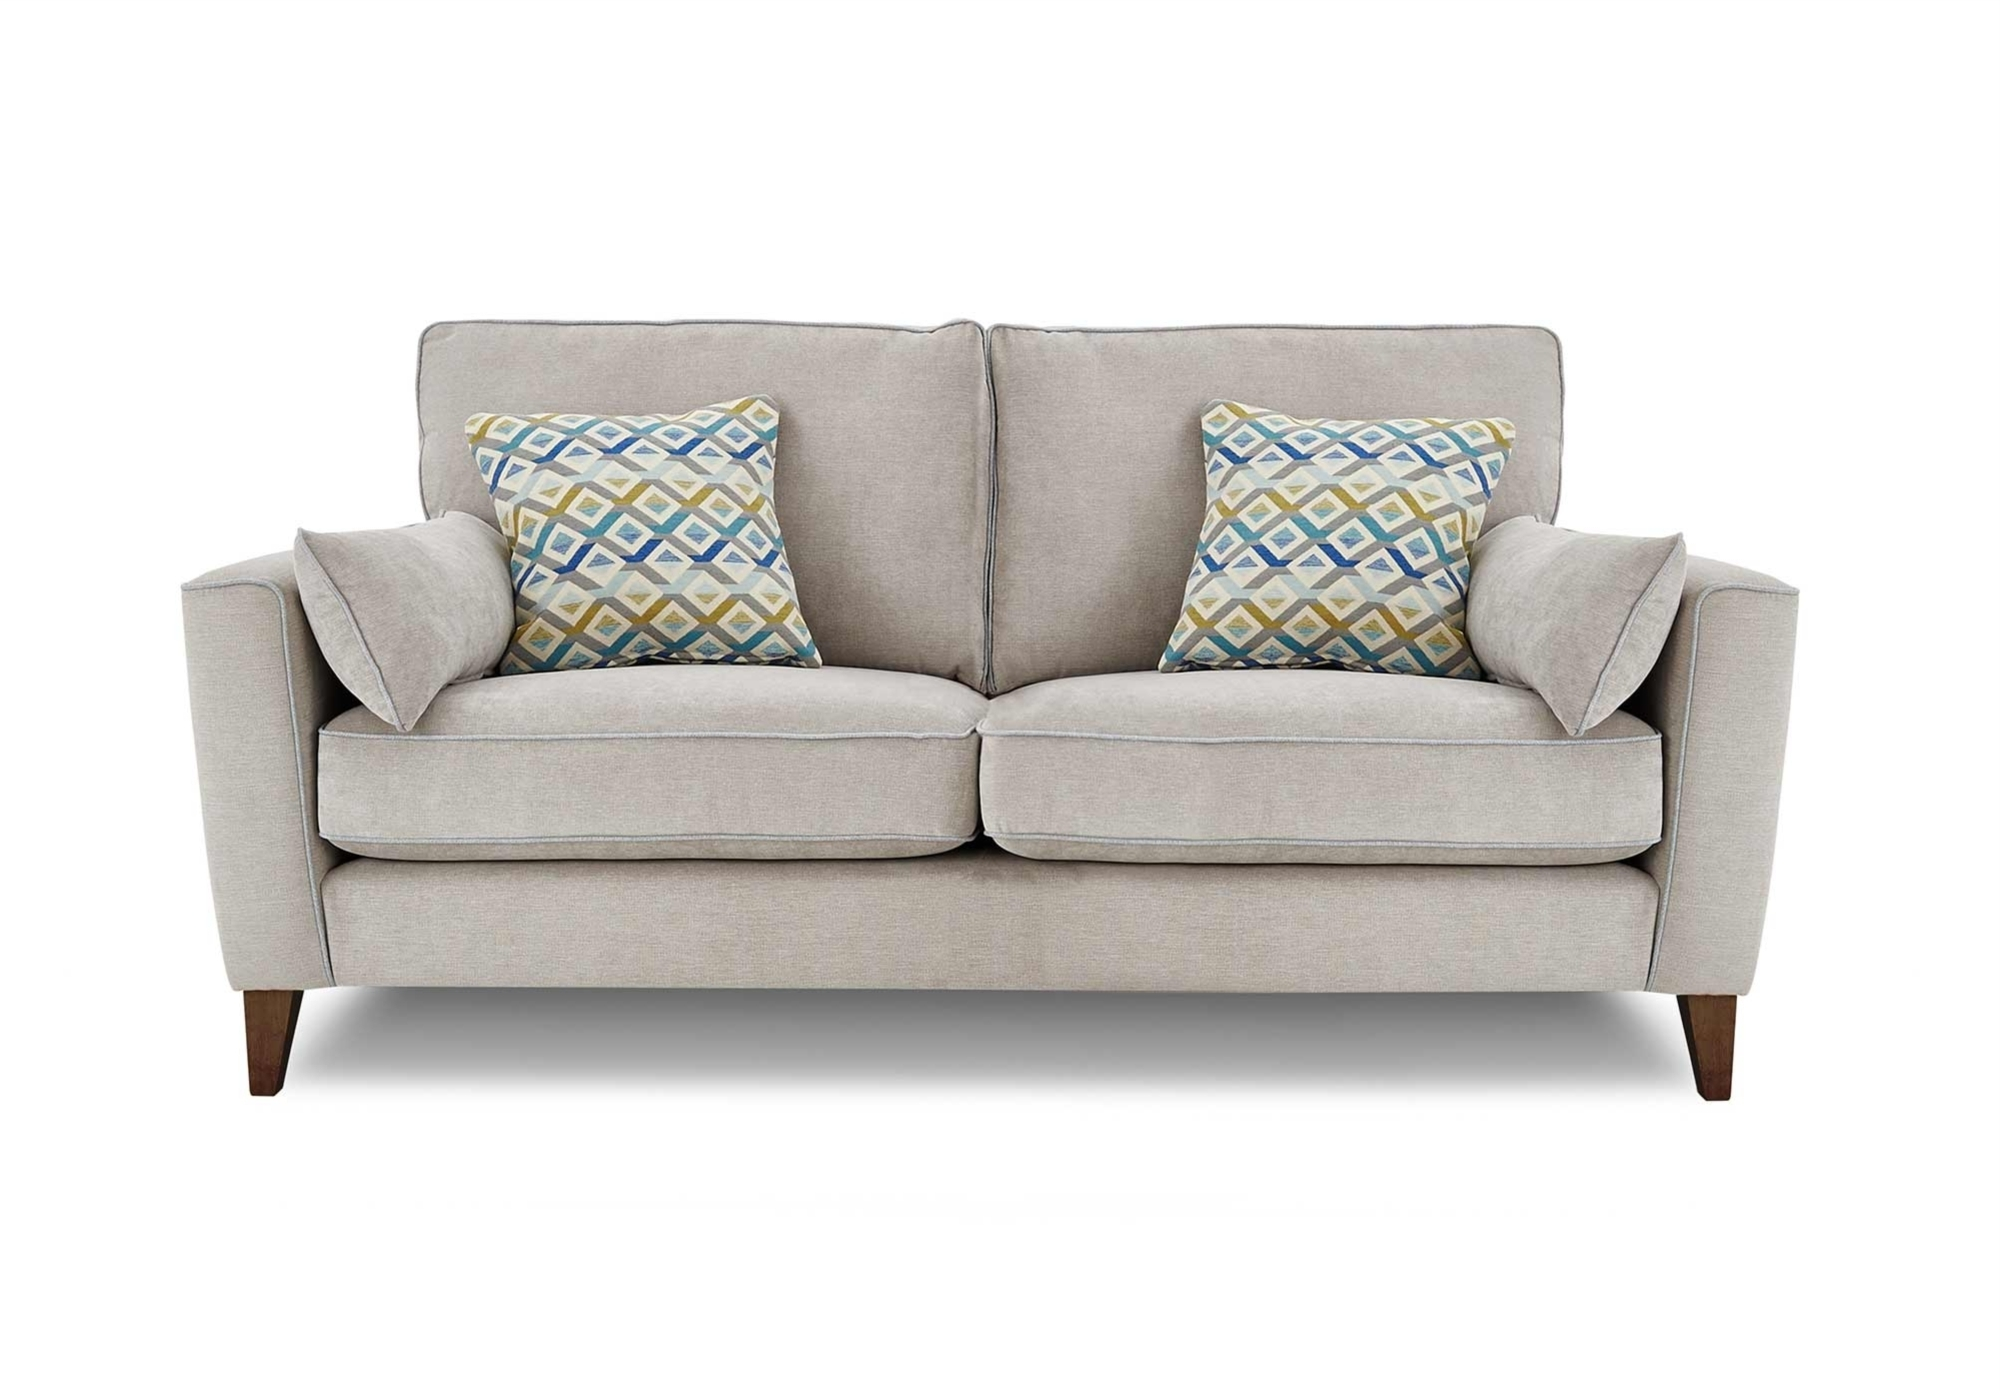 Perfect Small 2 Seater Sofa 61 On Modern Sofa Inspiration With With Regard To Well Known 2 Seater Sofas (View 19 of 20)